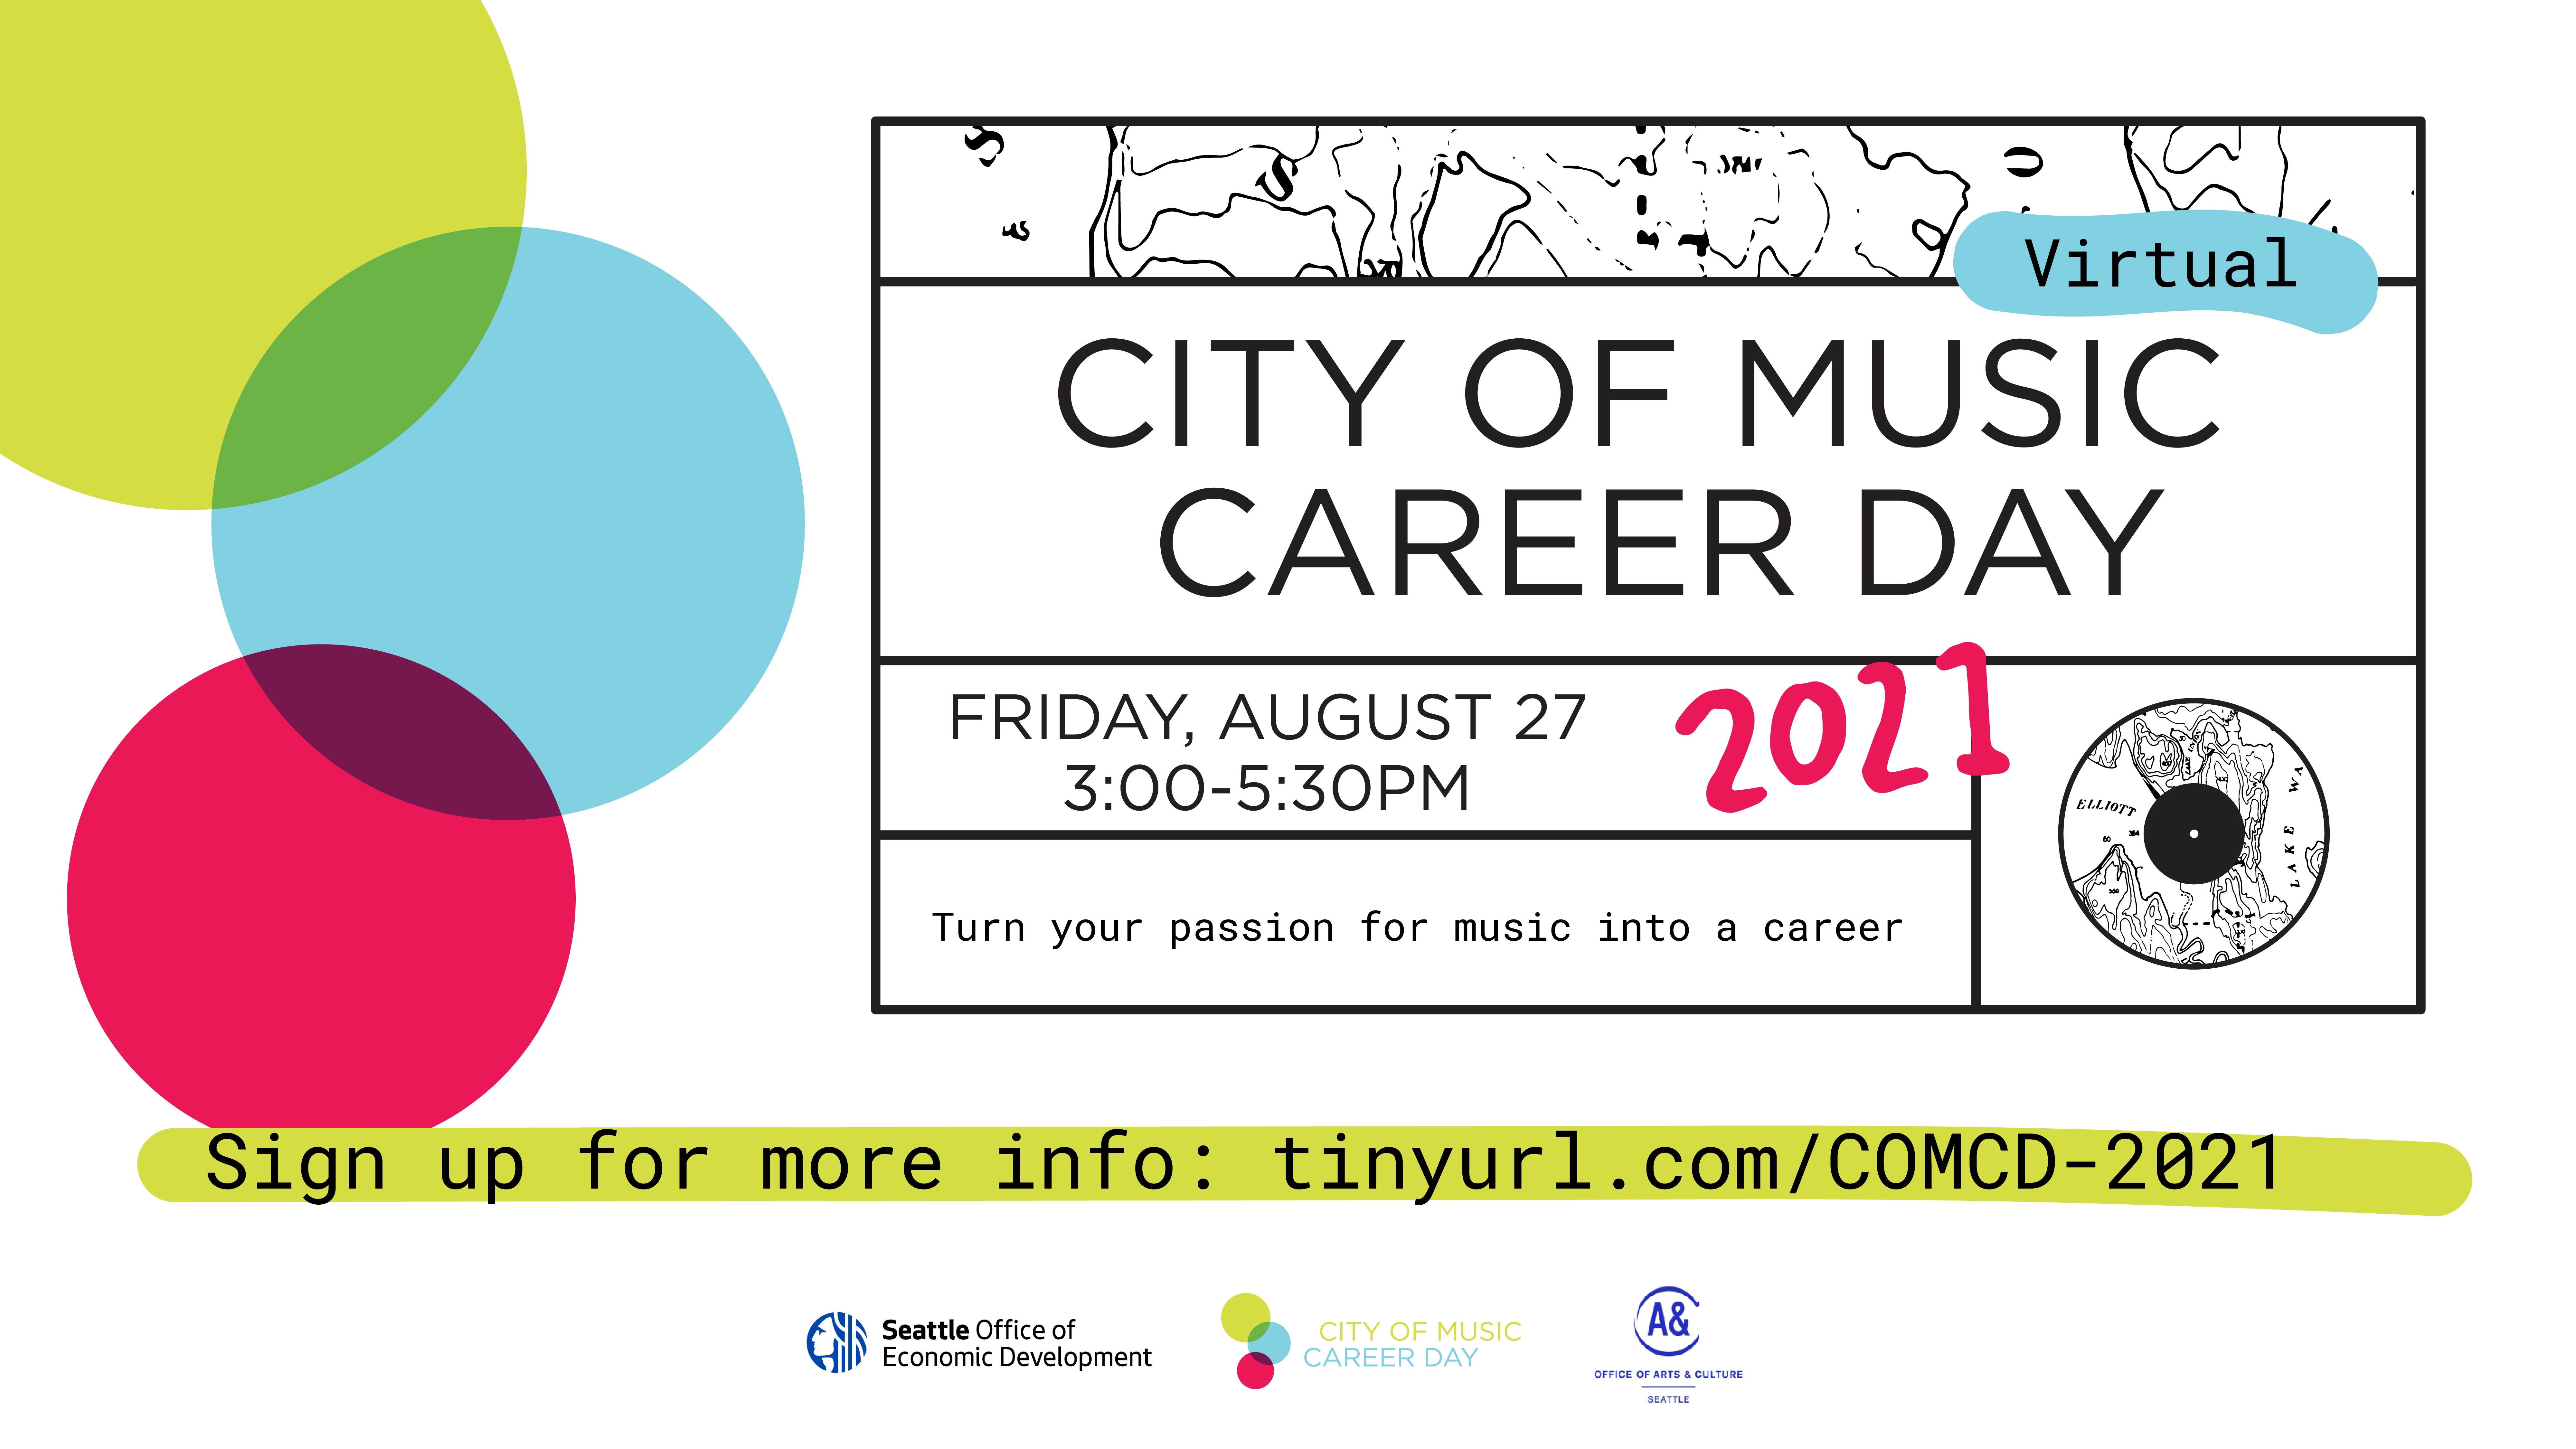 city of music career day music internships music industry networking music opportunities